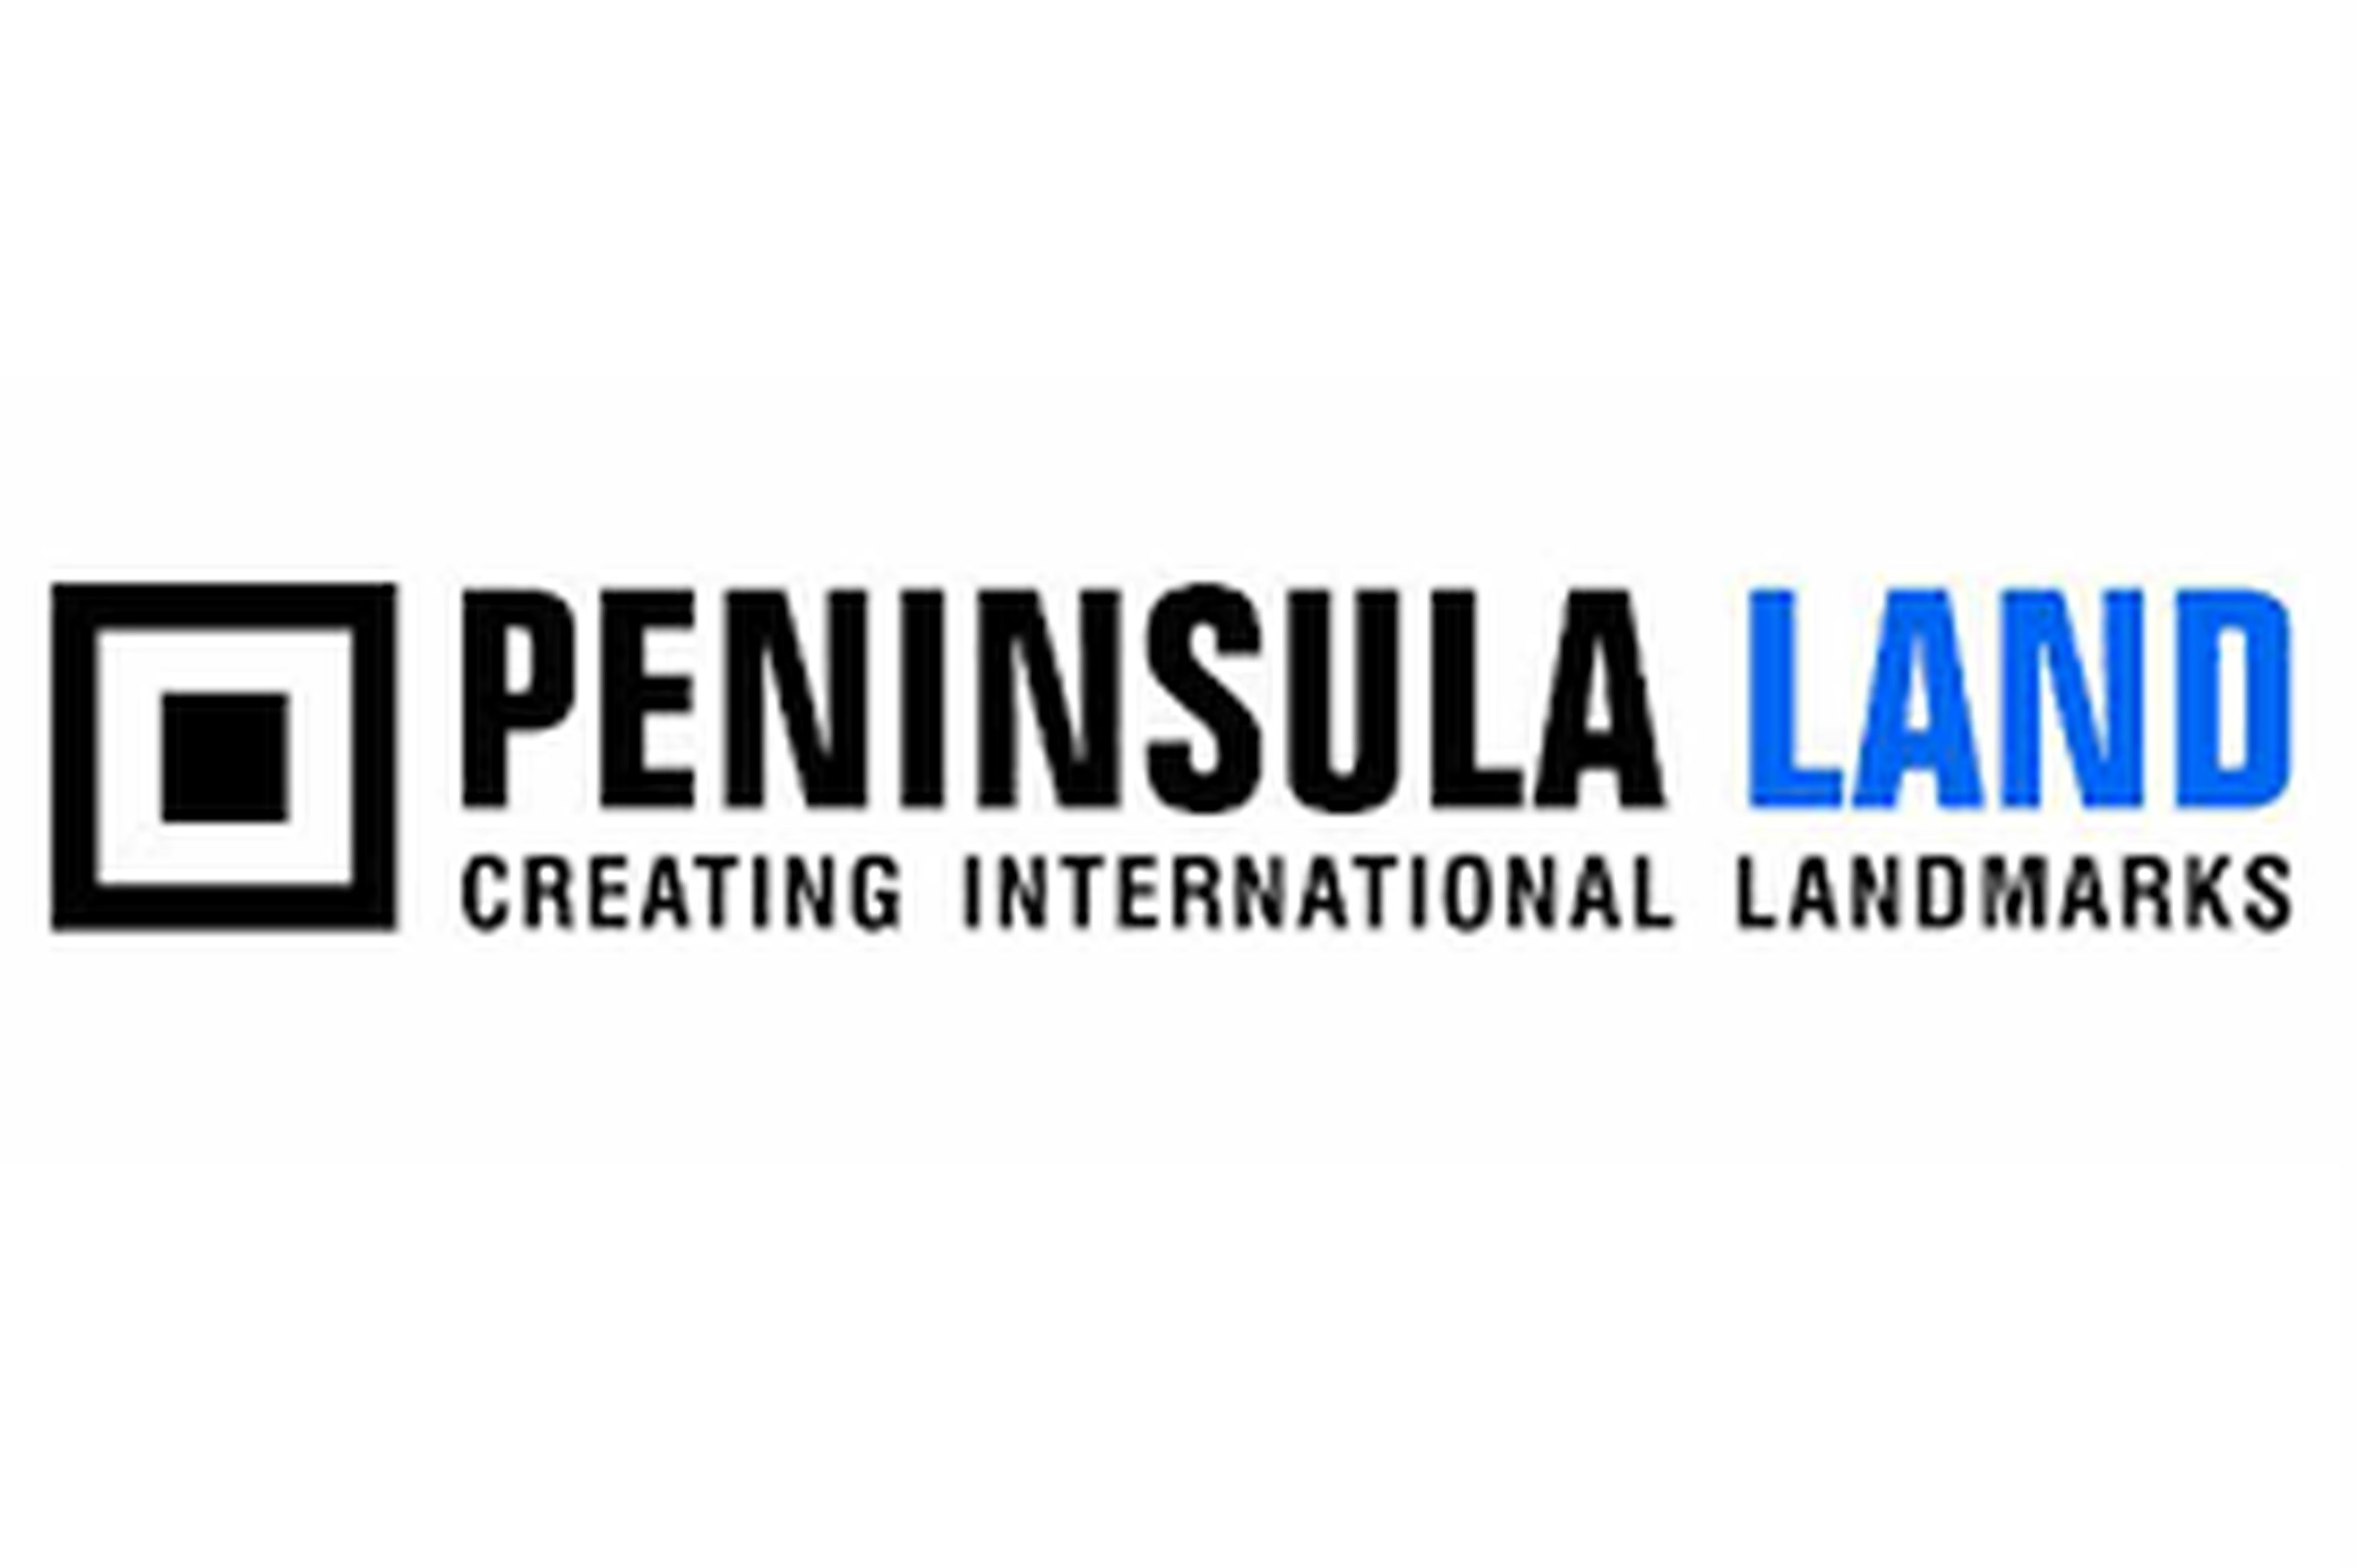 Peninsula Land Limited